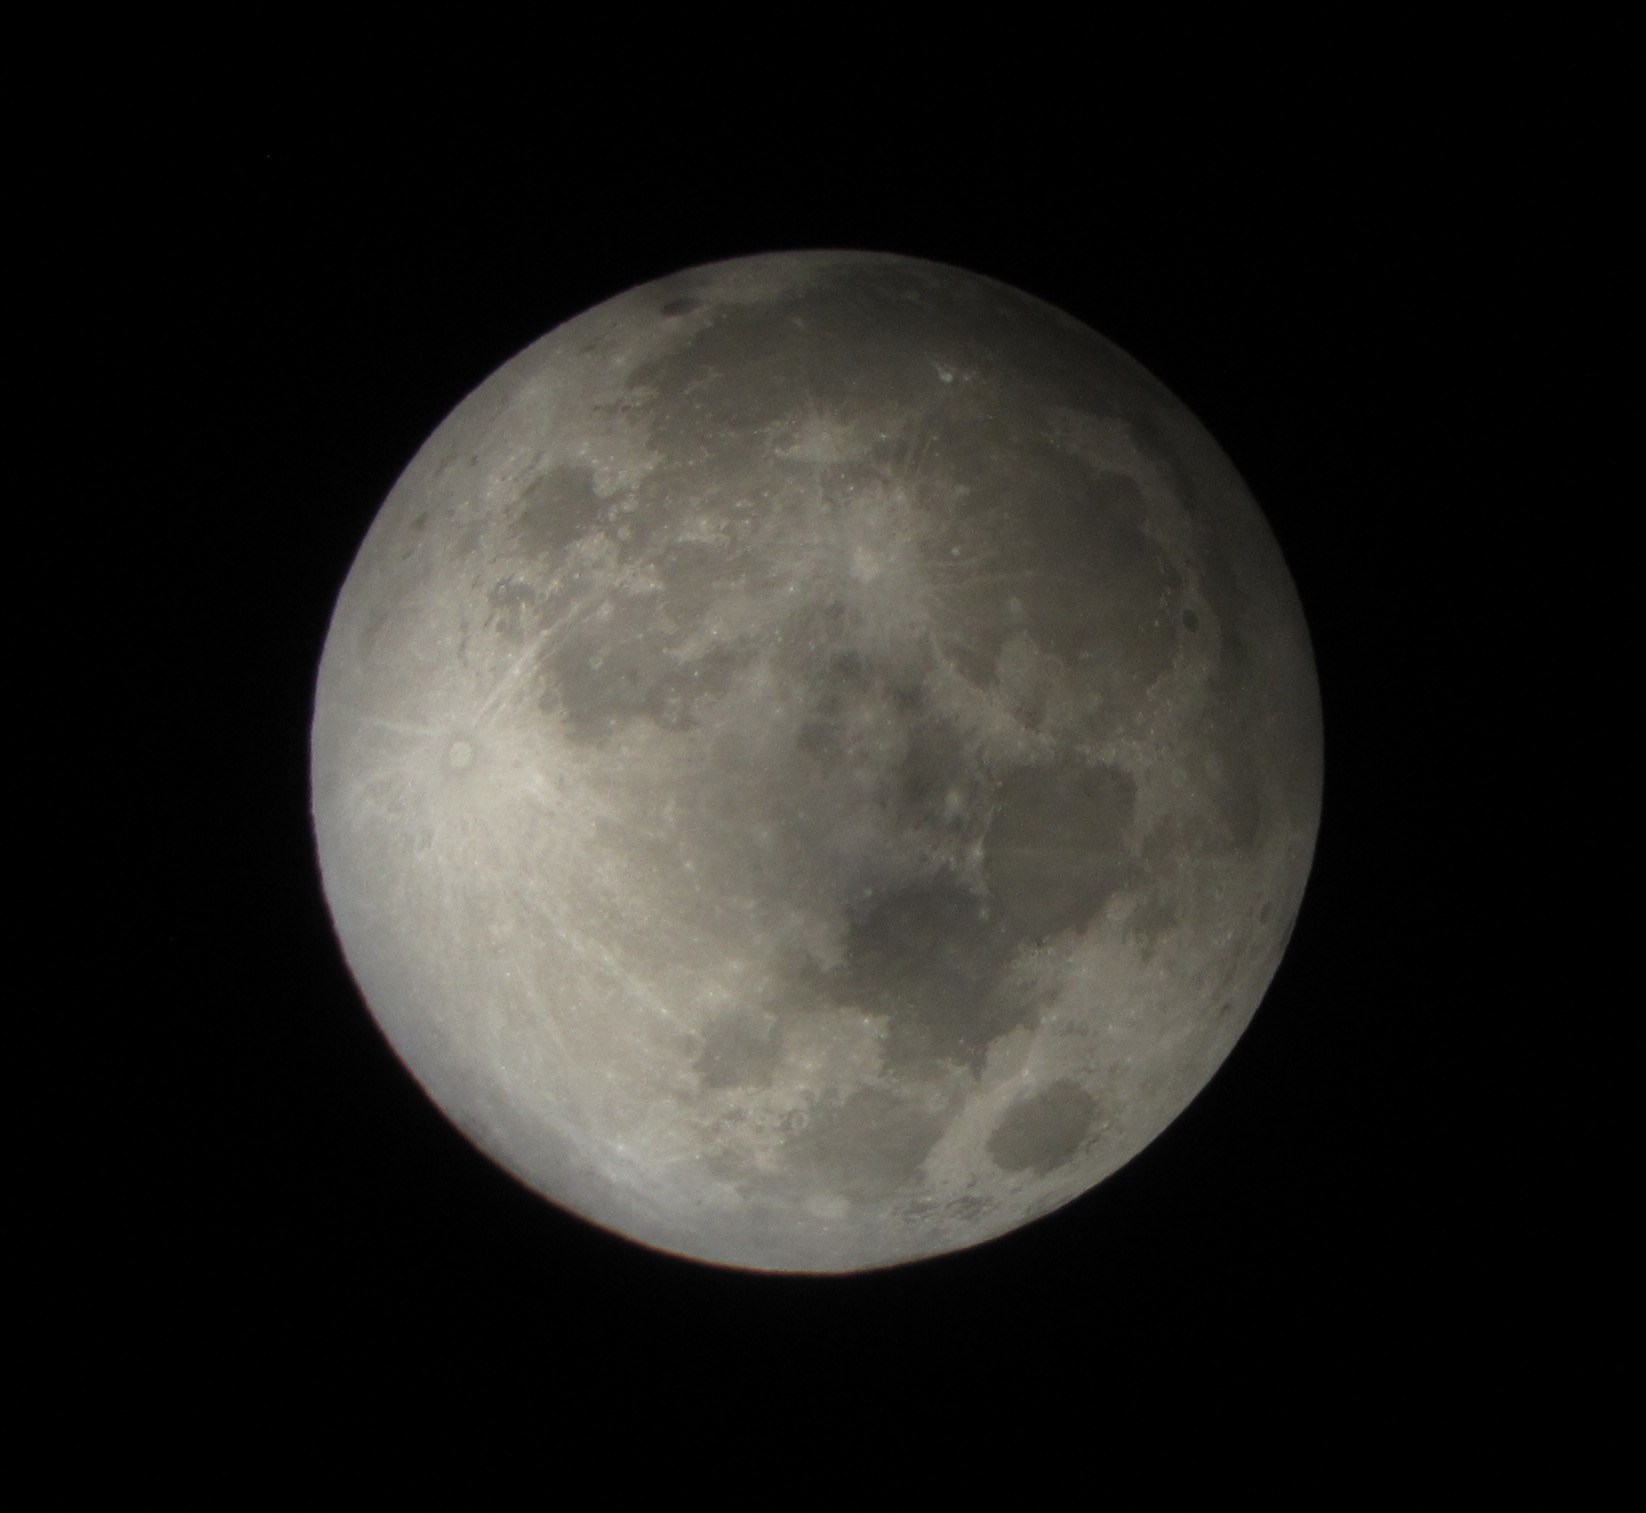 Penumbral Lunar Eclipse of 2012: David Matthews